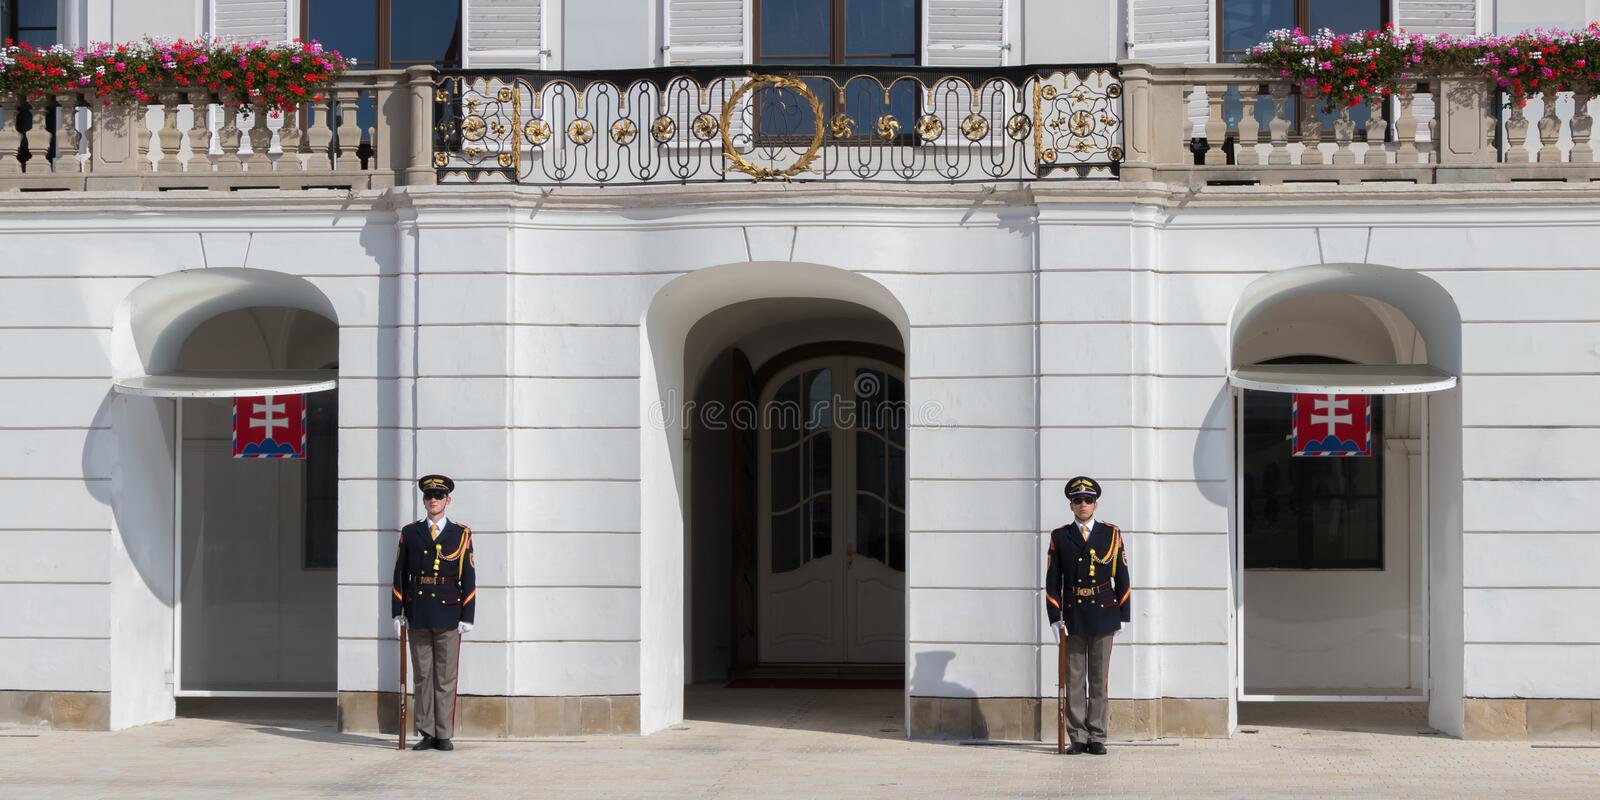 The elite guards of Honor in front of the presidential palace. Bratislava, Slovakia royalty free stock photos